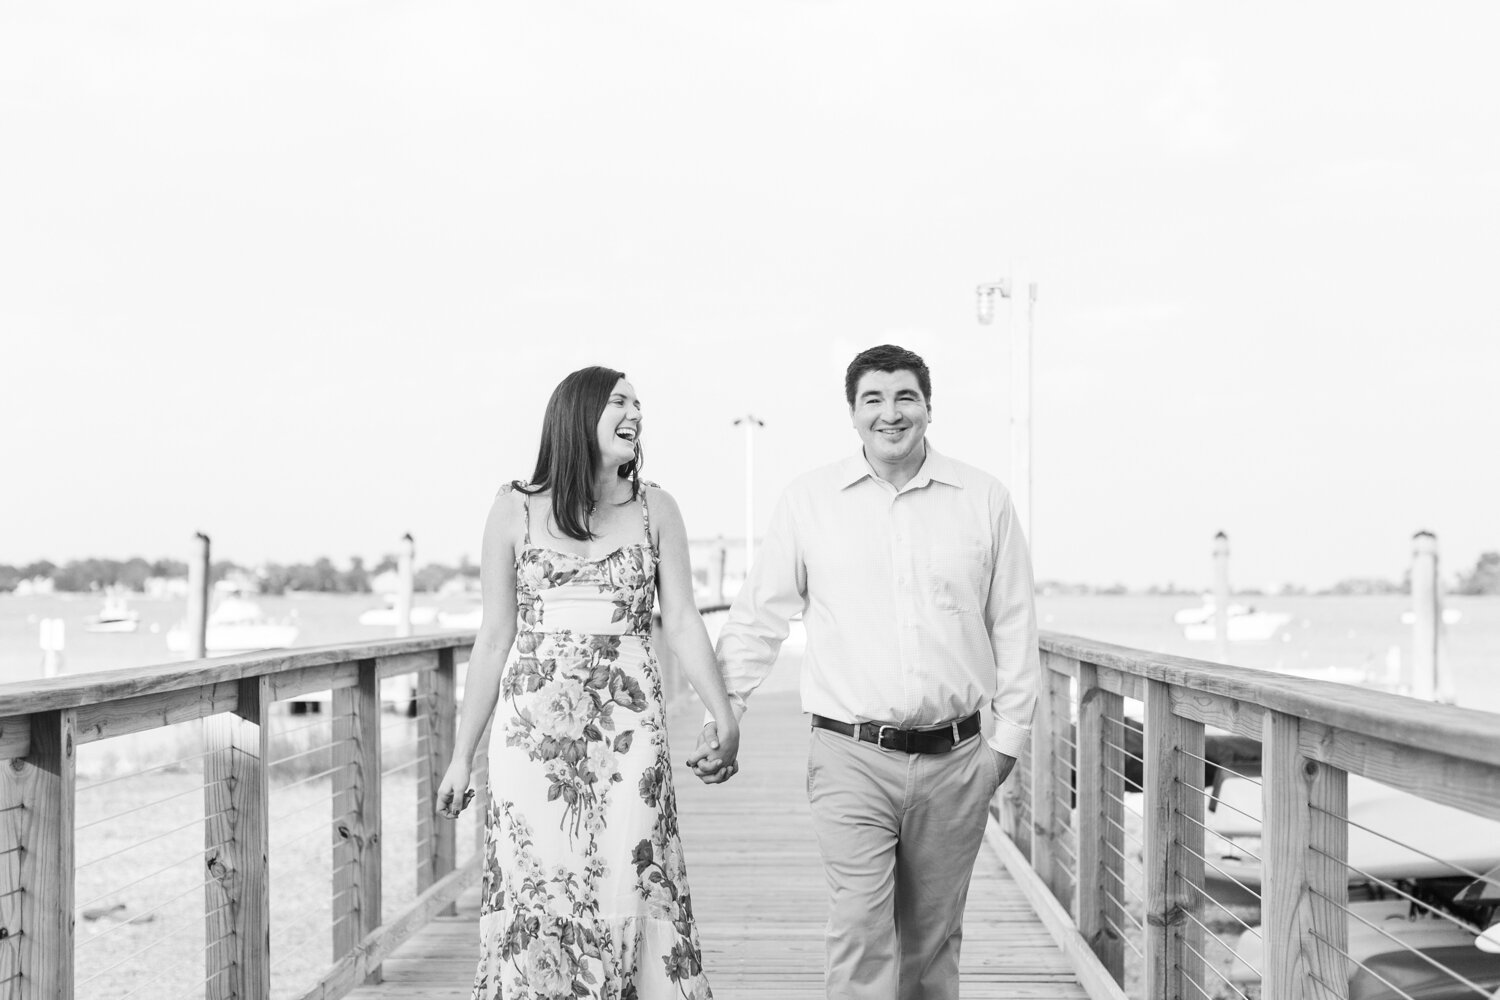 tods-point-engagement-session-greenwich-connecticut-wedding-photographer-rachel-craig-shaina-lee-photography-photo-20.jpg